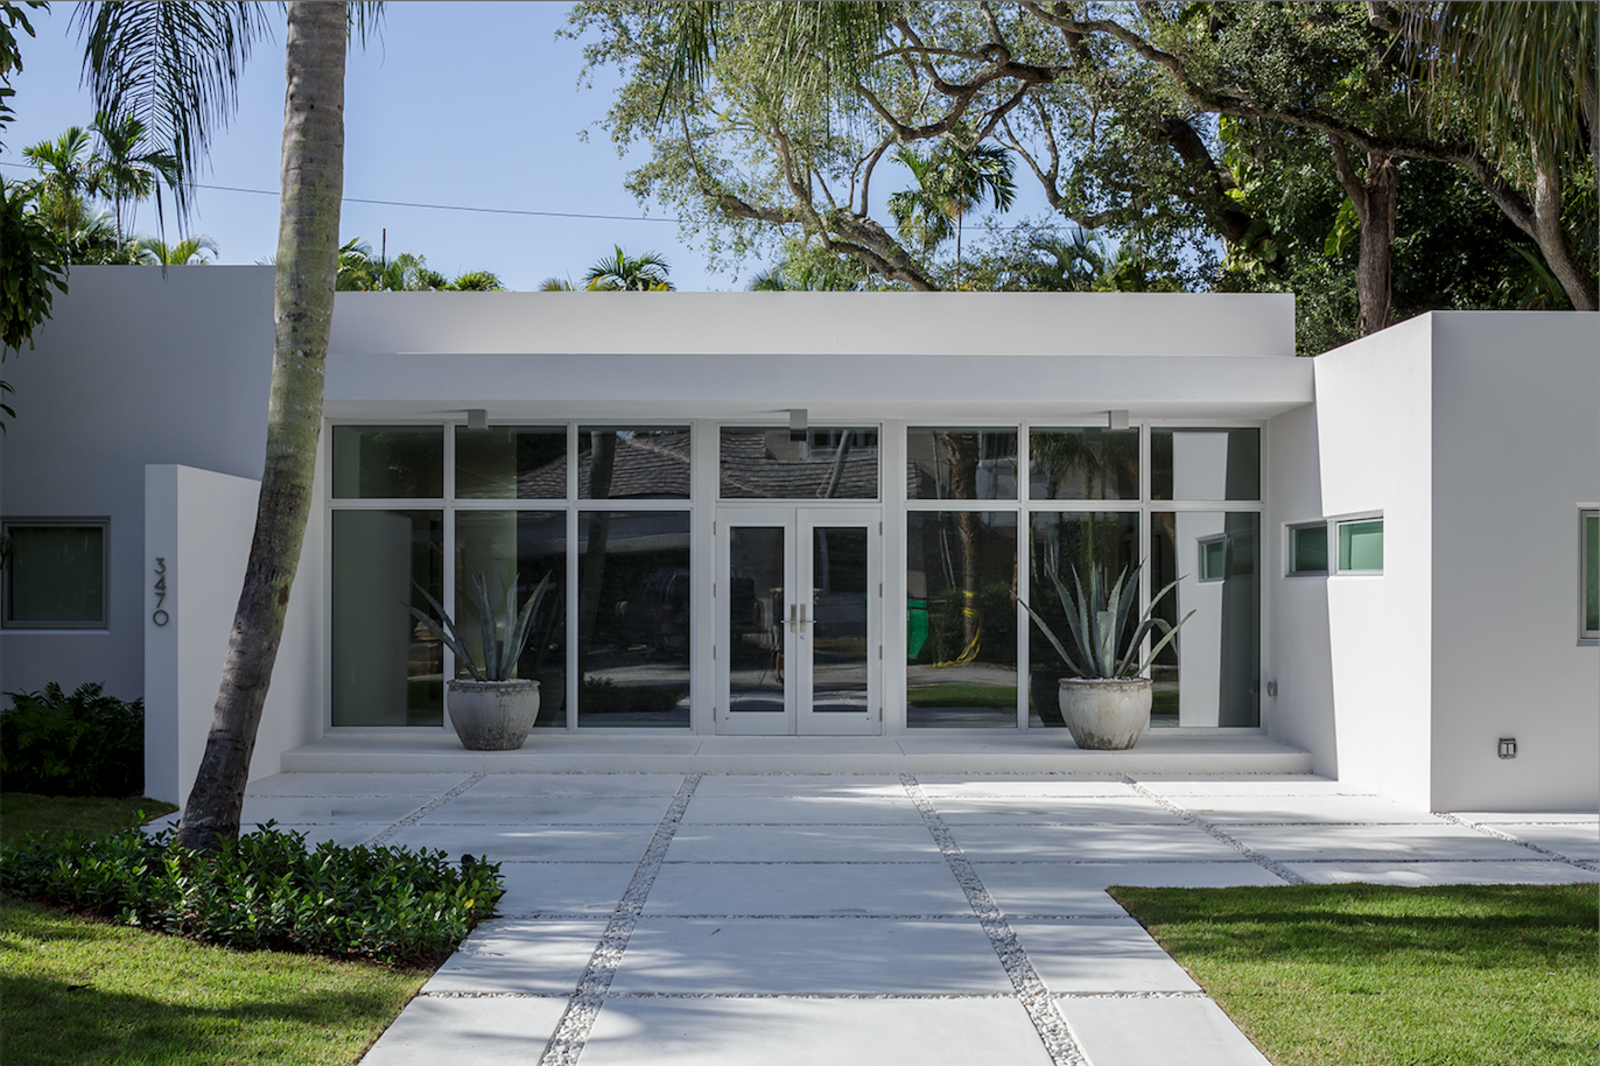 The home's potential for outward expansion was limited, so new glass doors and windows were installed in a storefront configuration (a decision not common to residential construction) to provide ample natural light for the main entrance.